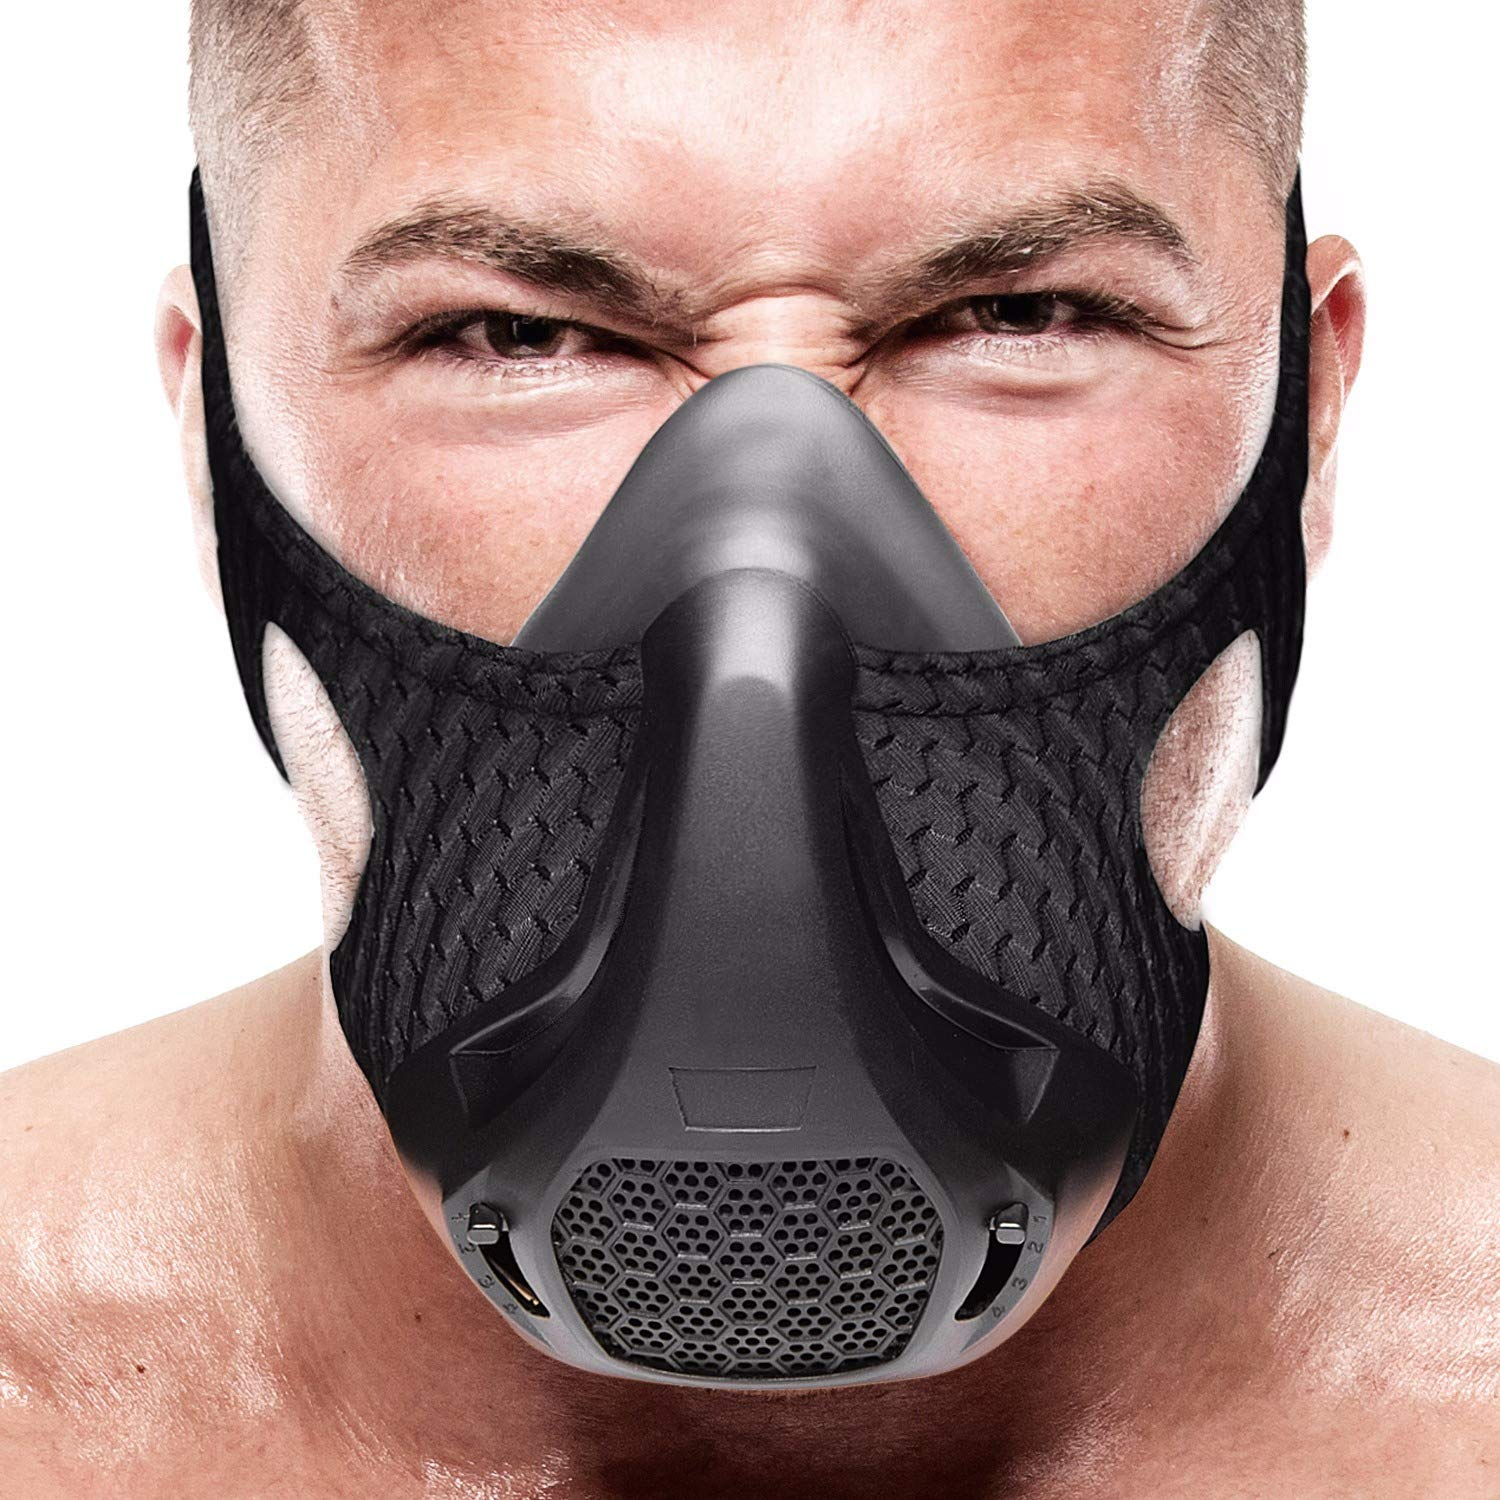 VEOXLINE Training Mask   Sport Workout for Running Biking Fitness Jogging Gym Soccer Cardio Exercise Breathing with Air Level Regulator for Men Women   Imitate Workout at High Altitudes (Black)